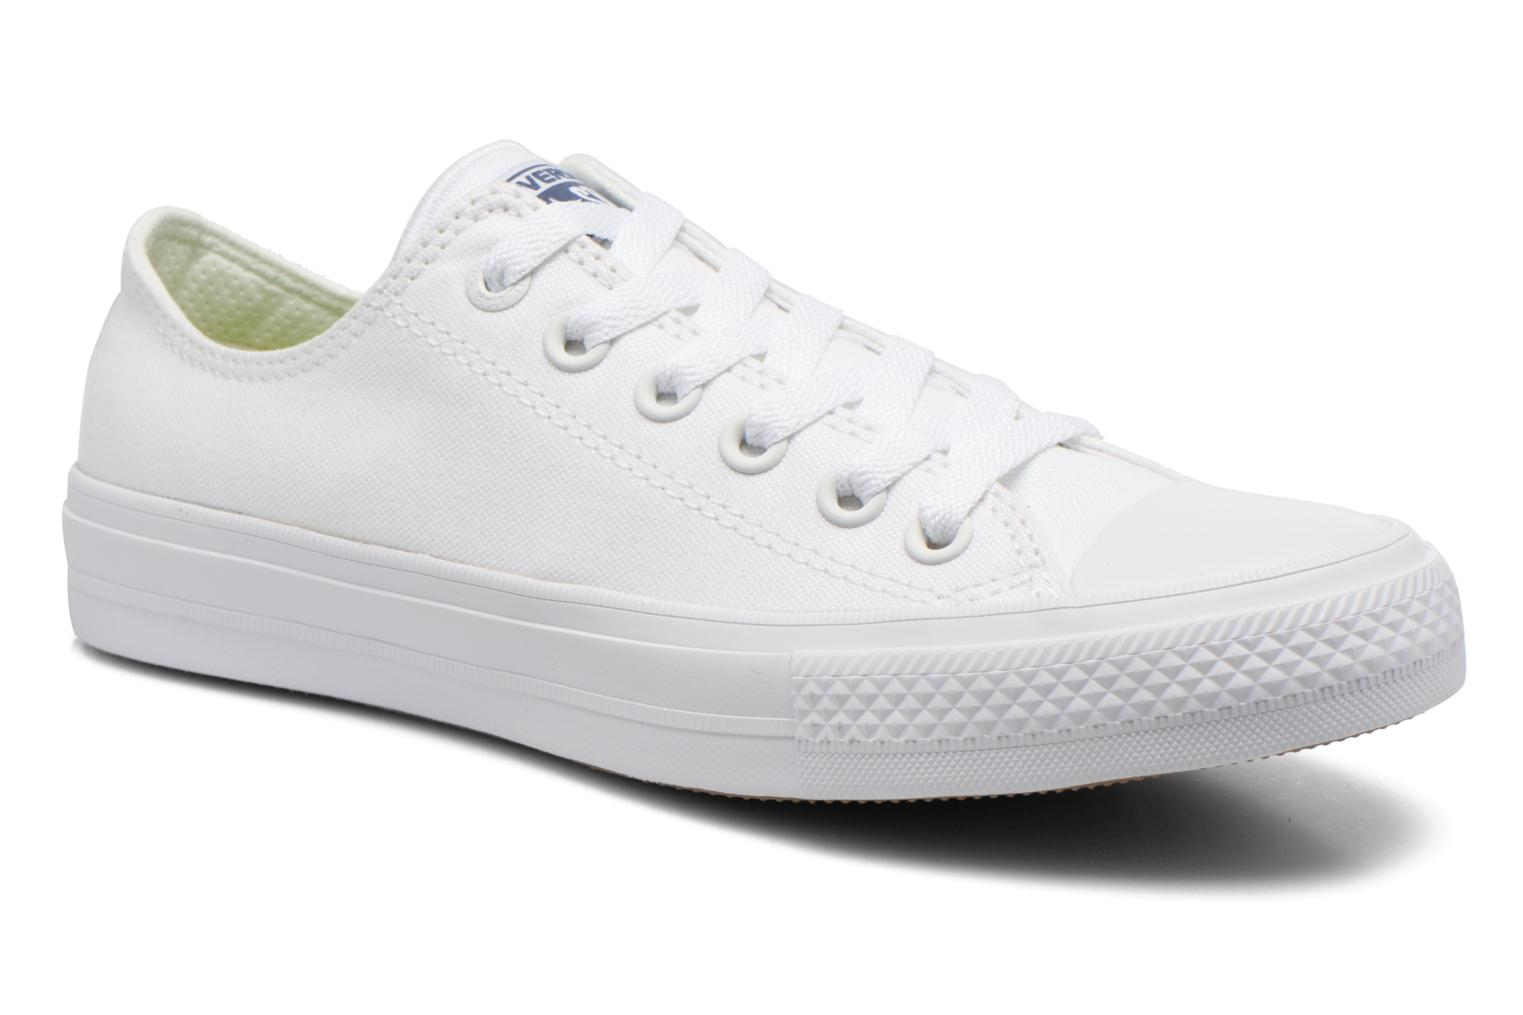 converse chuck taylor all star 2 ox